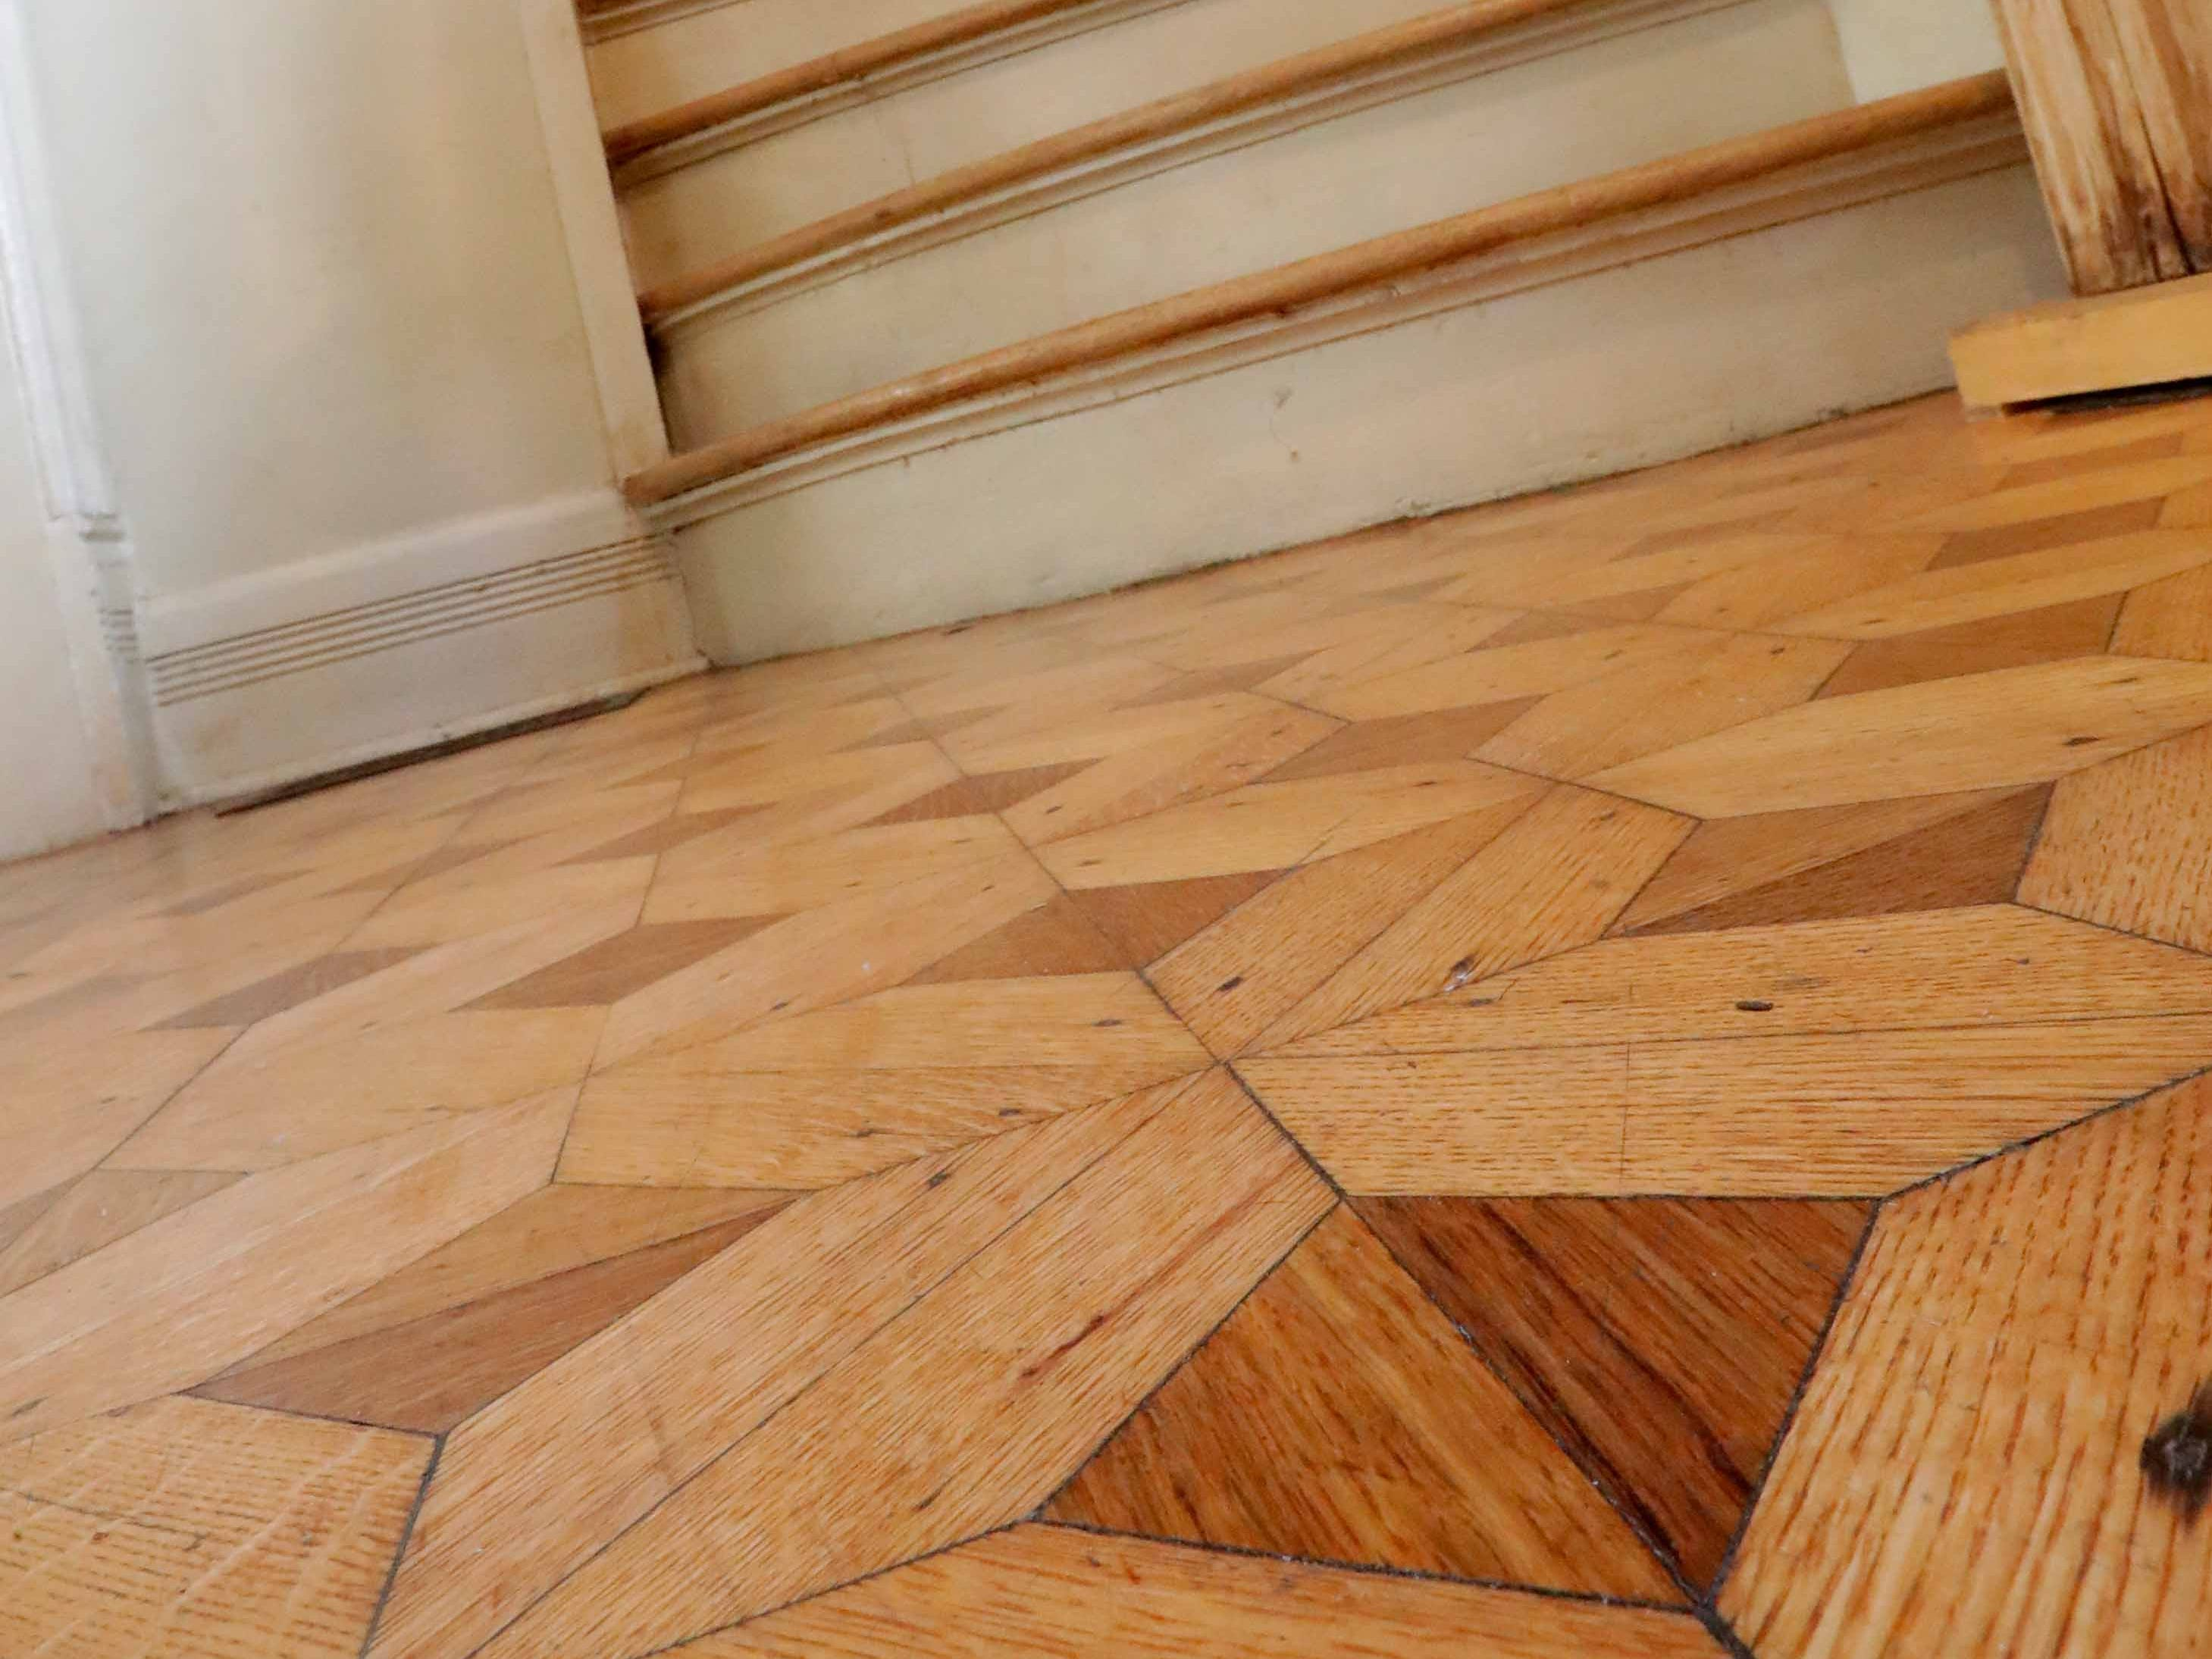 Parquet flooring greets visitors in the entryway.